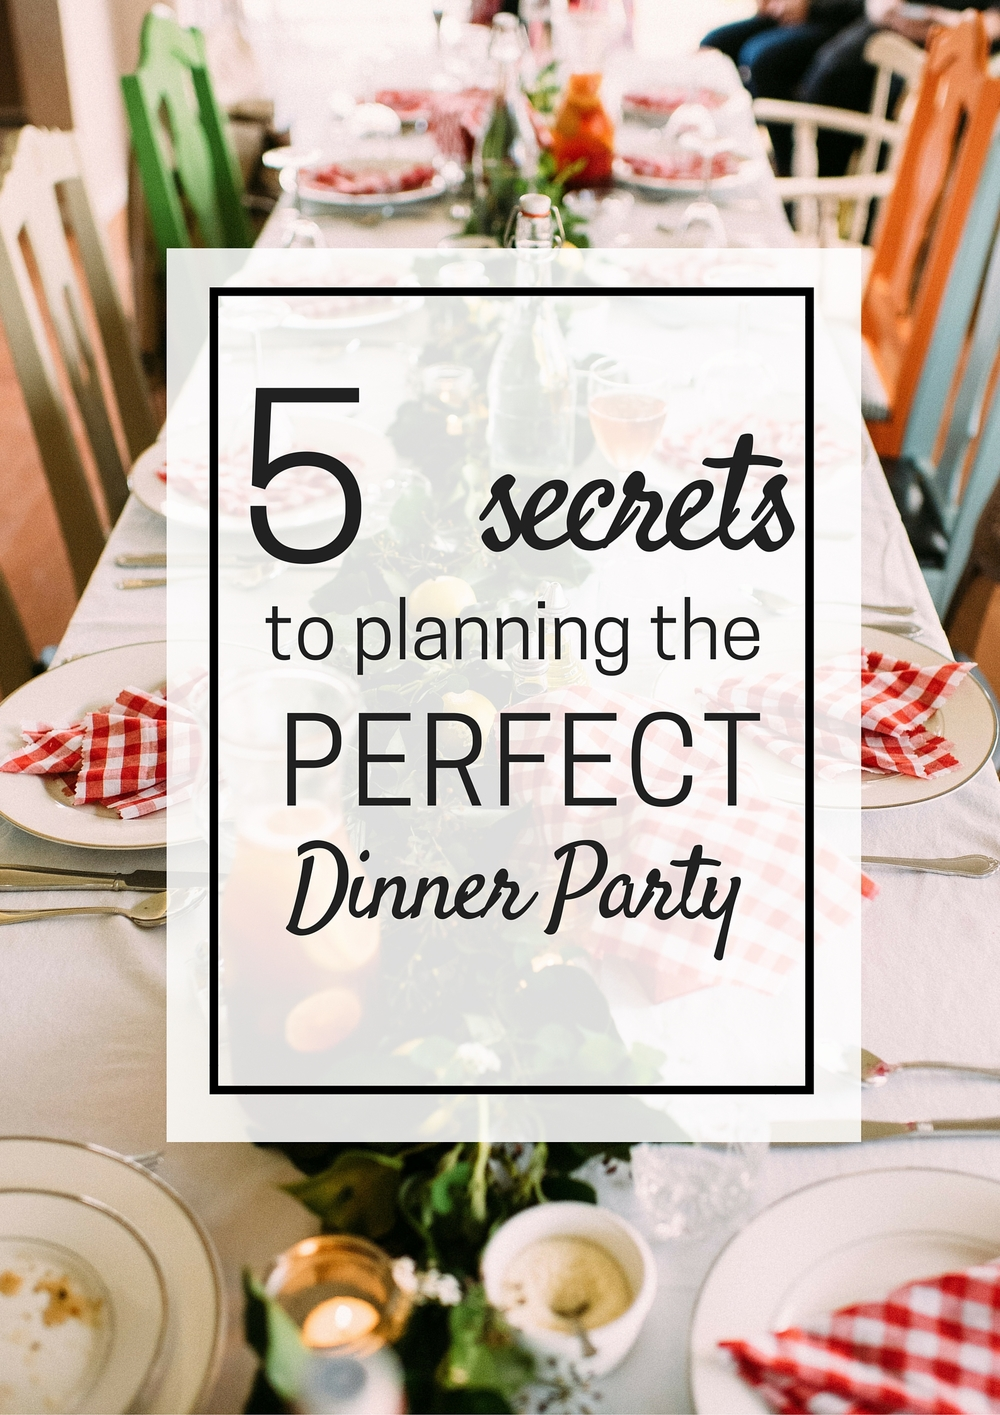 5 Secrets to planning the Perfect Dinner Party